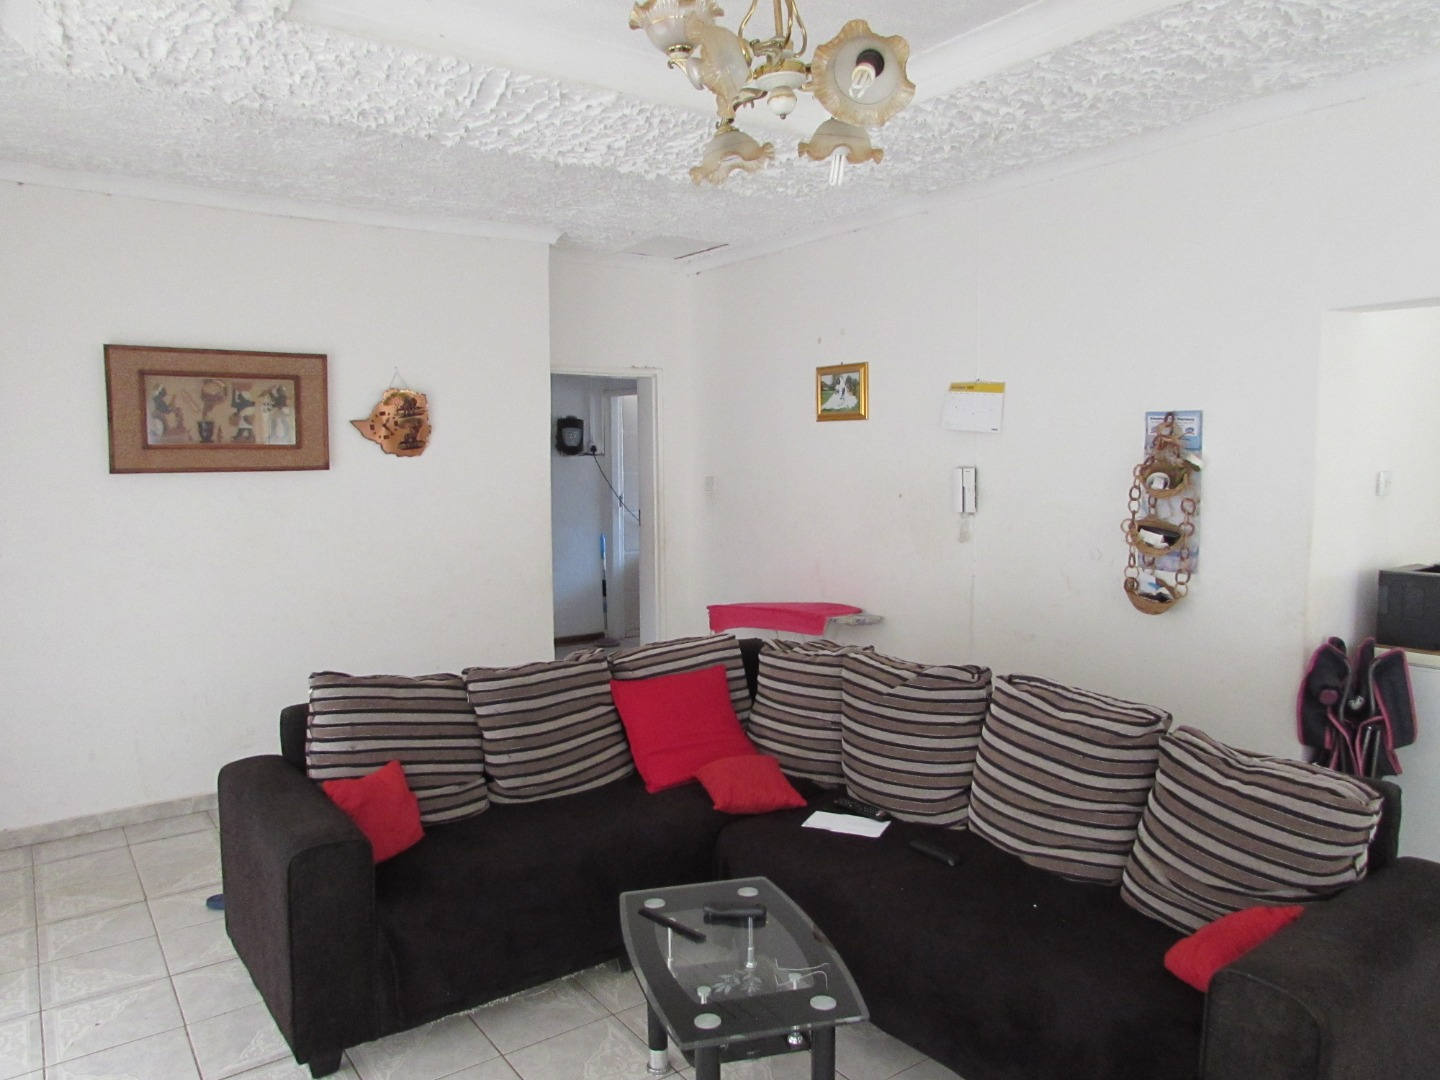 3 Bedroom House For Sale in Block 9